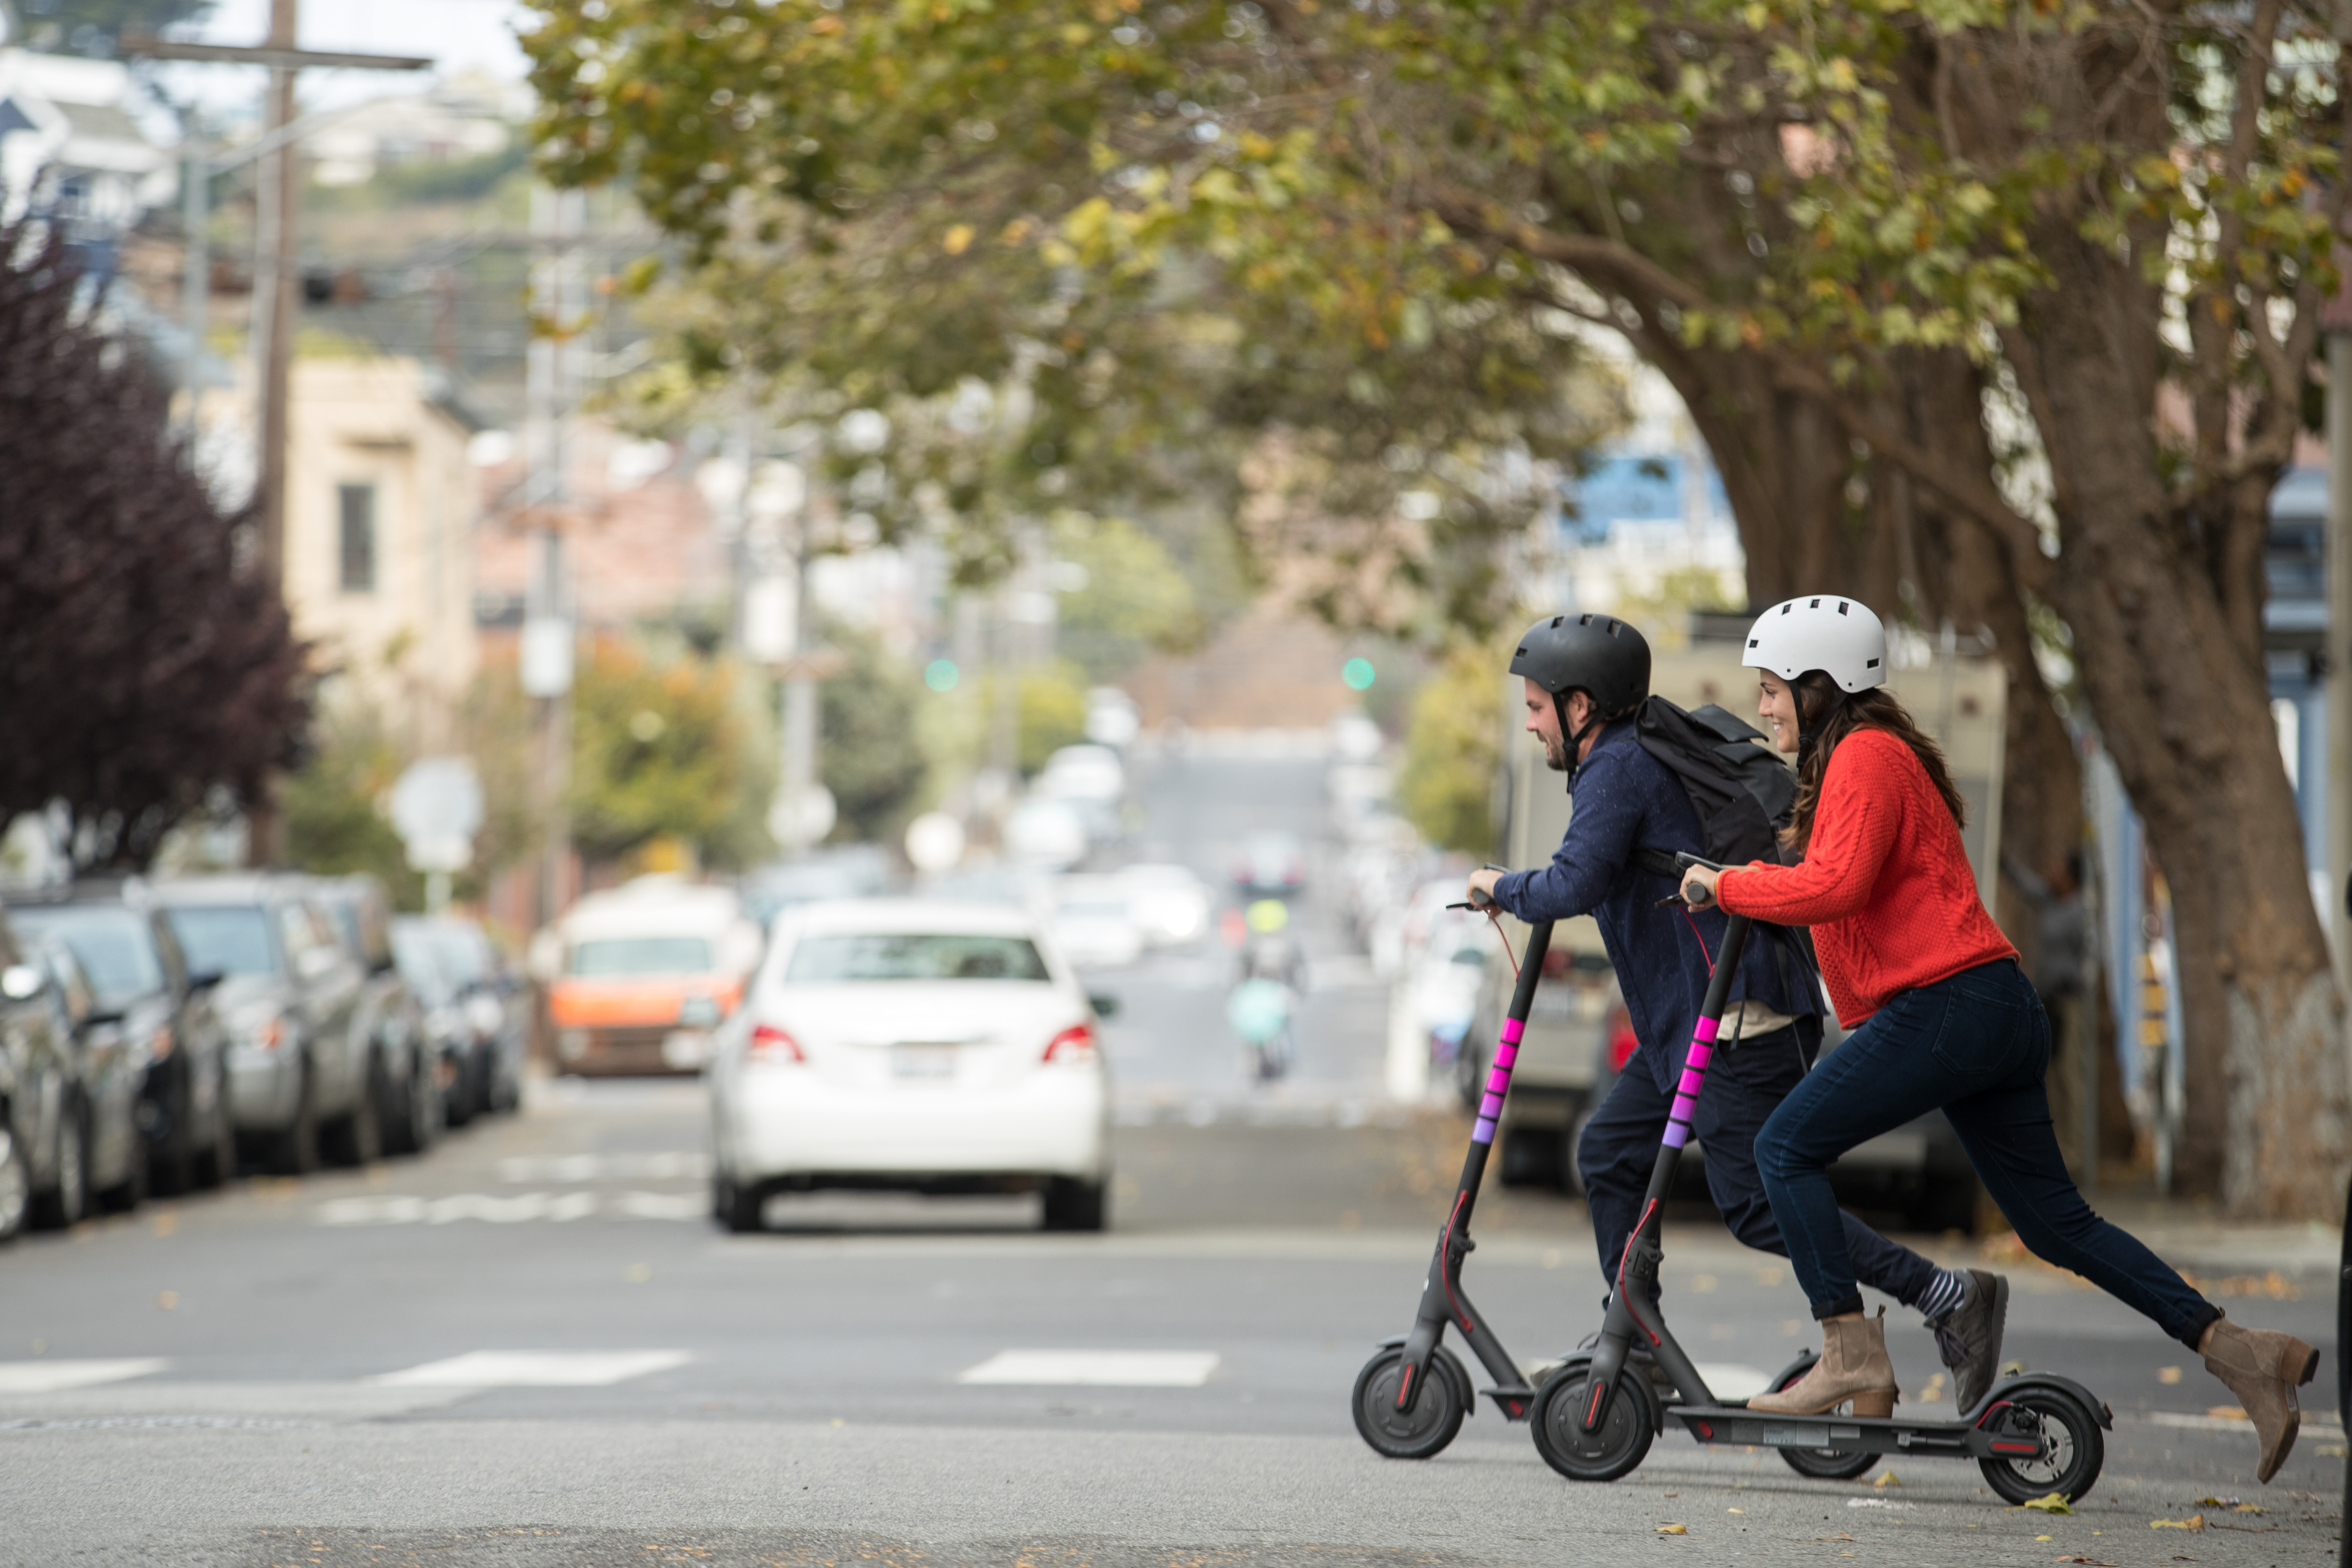 Whether you hate 'em or love 'em, get ready to see a few more electric scooters around town, as Lyft has just announced that they will release their own line in D.C.{ } (Image: Courtesy Lyft)